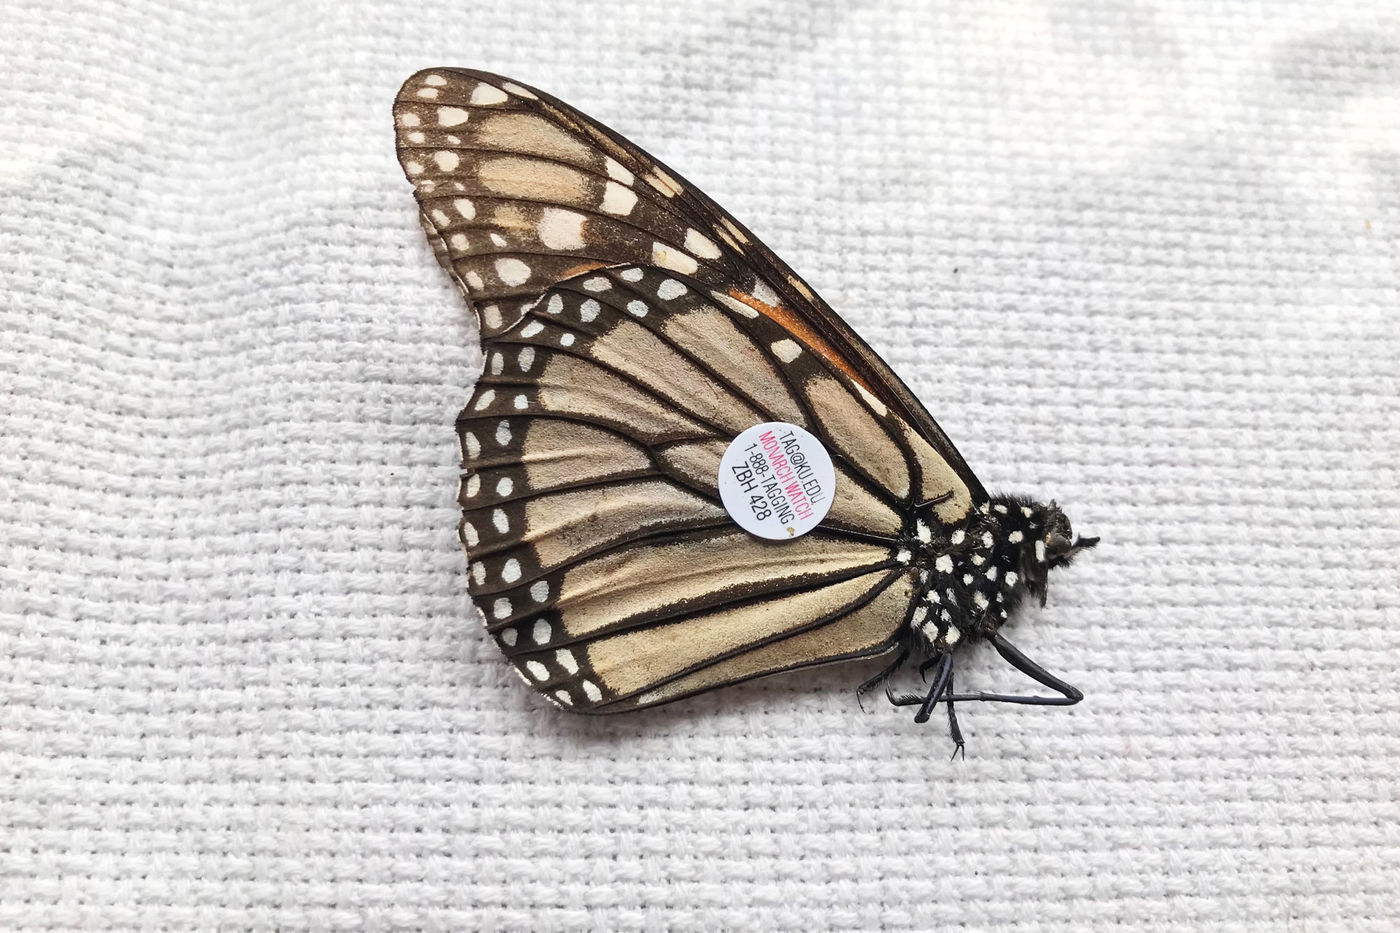 A monarch butterfly with a small round sticker on the underside of its wing, lying on a white cloth. The sticker has small black and red text.